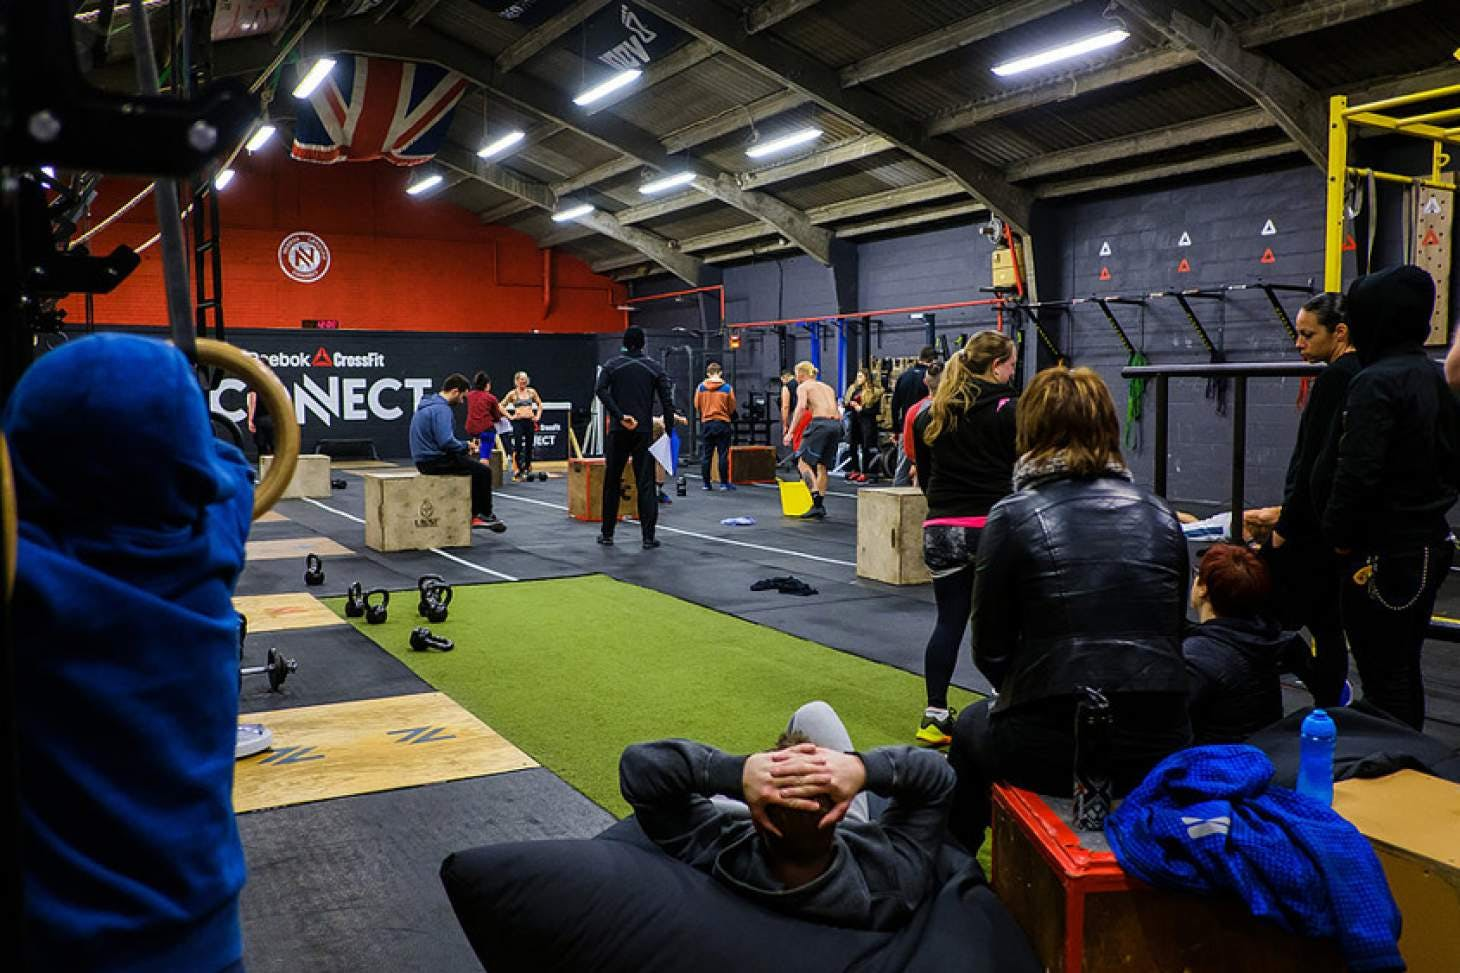 Crossfit Connect Gym | Hard gym